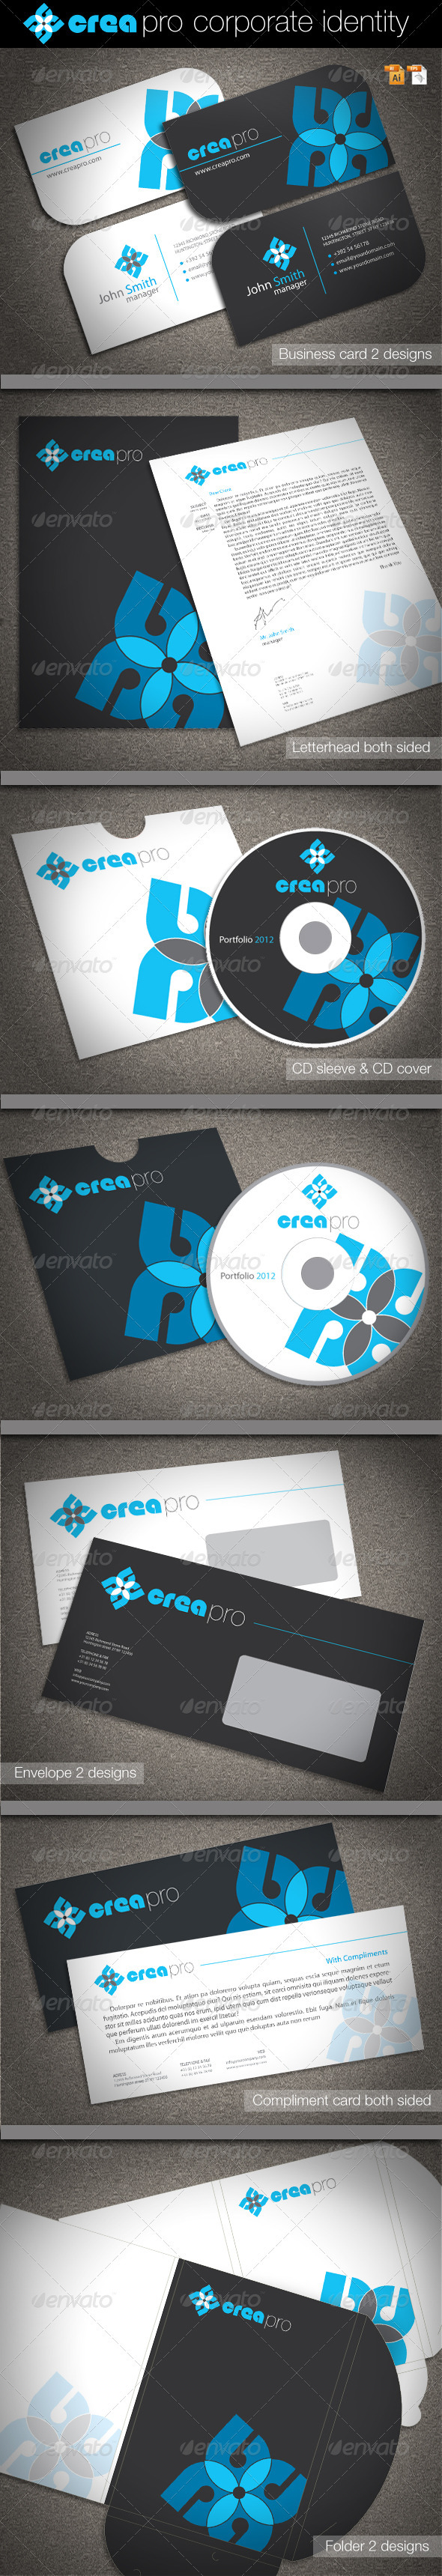 Crea Pro Corporate Identity - Stationery Print Templates